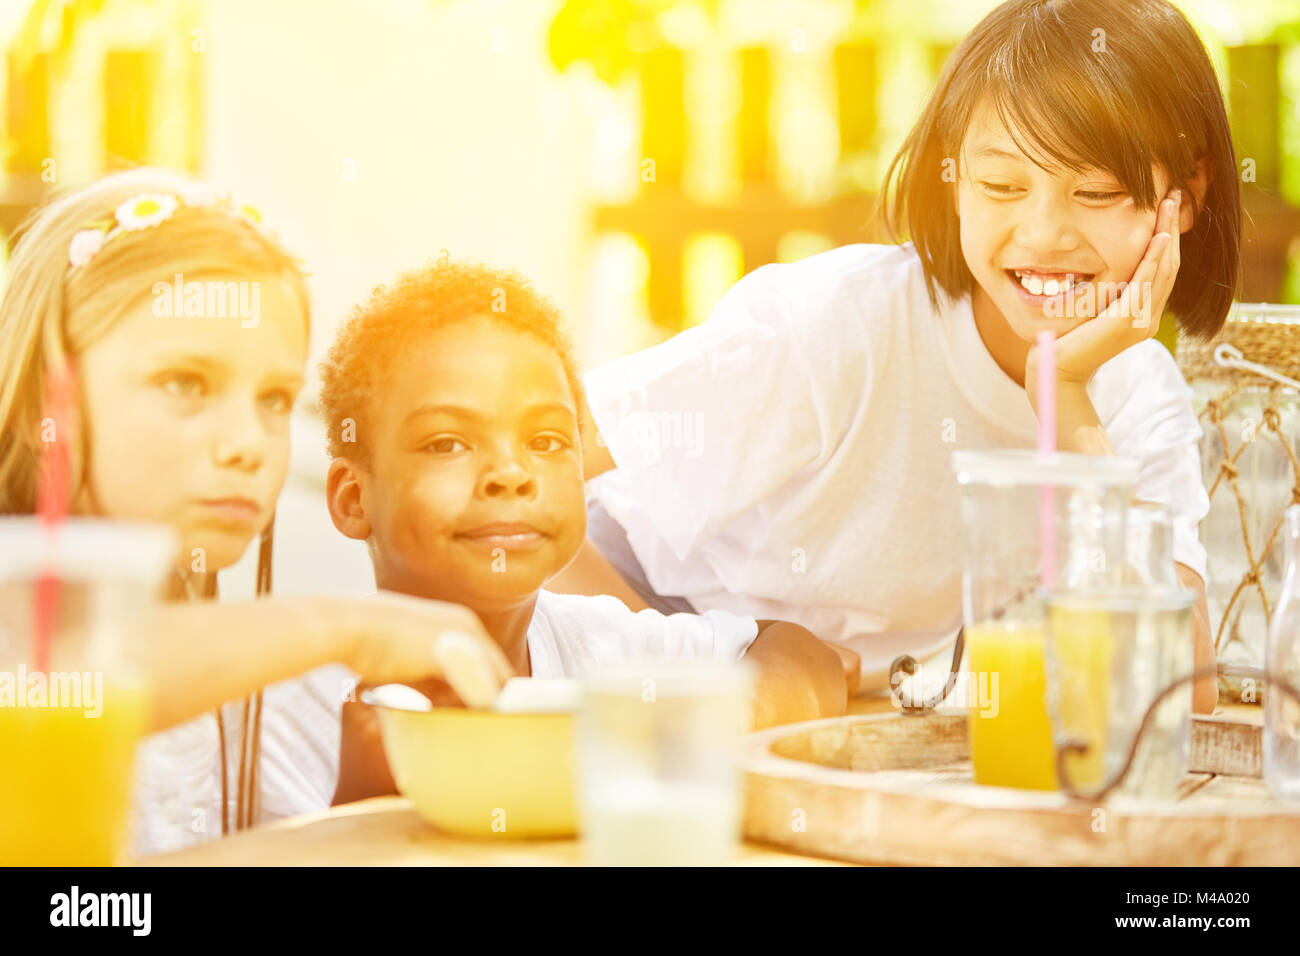 Happy kids eating breakfast cereal together at summer camp - Stock Image